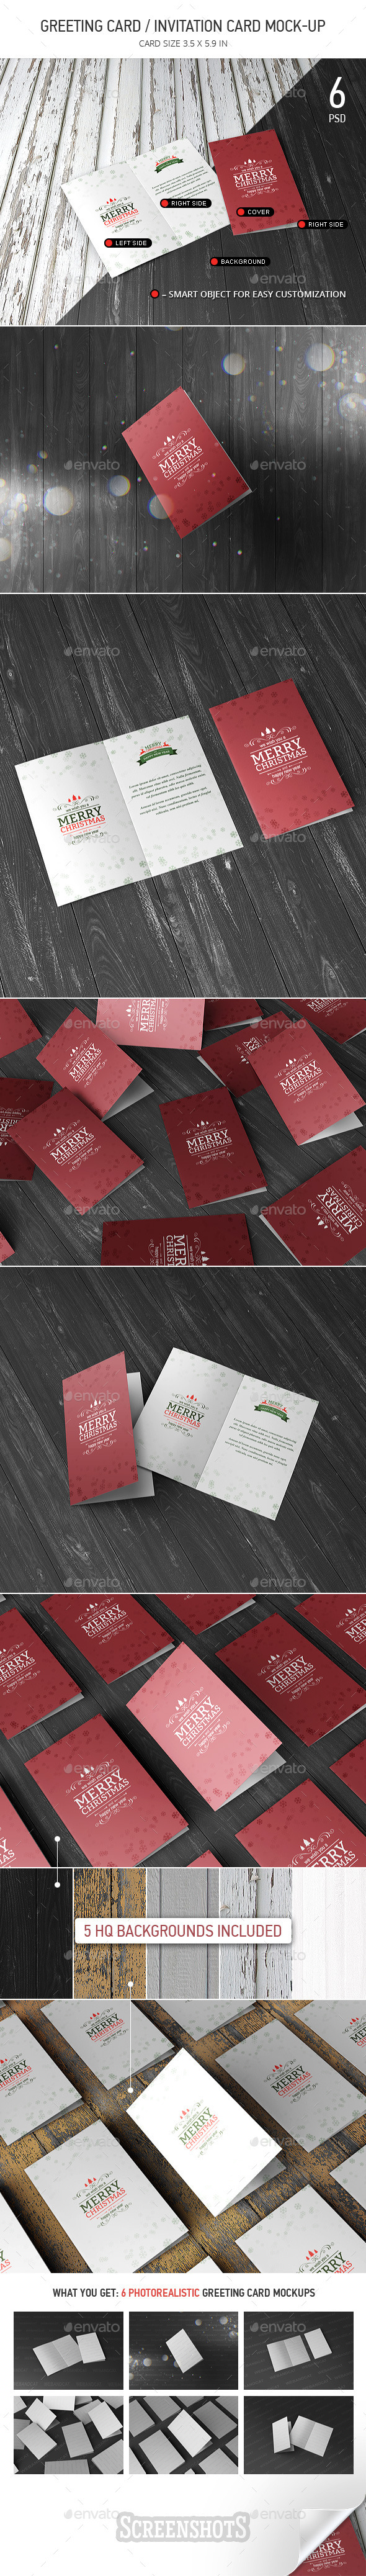 Greeting / Invitation Card Mock-Up  - Miscellaneous Print